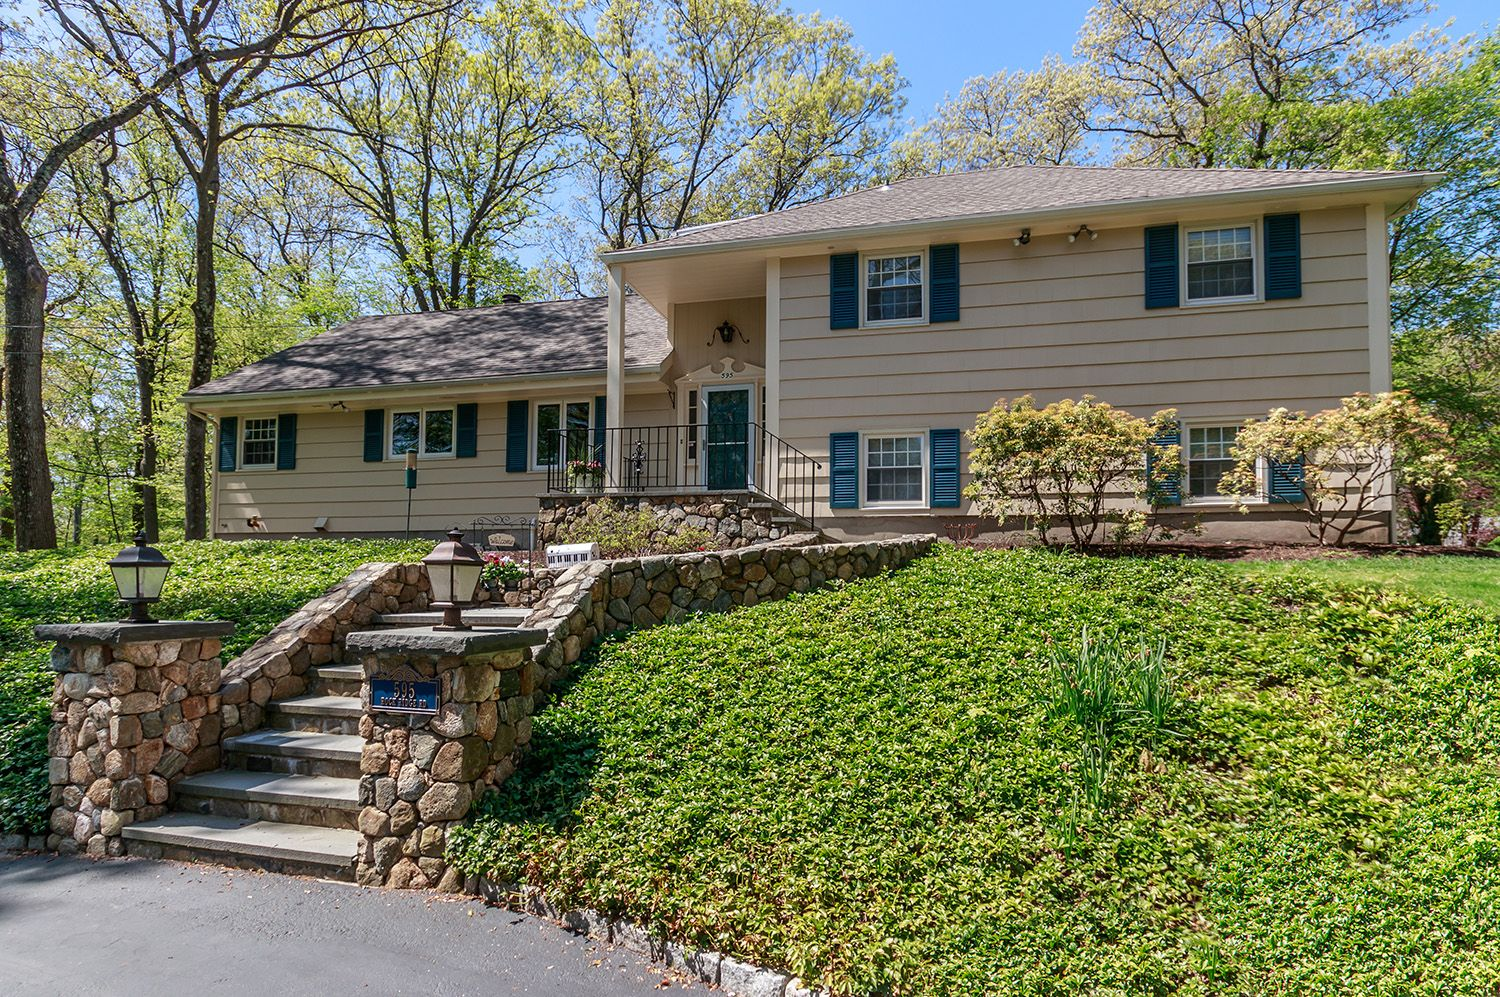 Sold 595 Rock Ridge Road Fairfield Ct Fairfield County Real Estate Guide Real Estate Guide Large Backyard Backyard